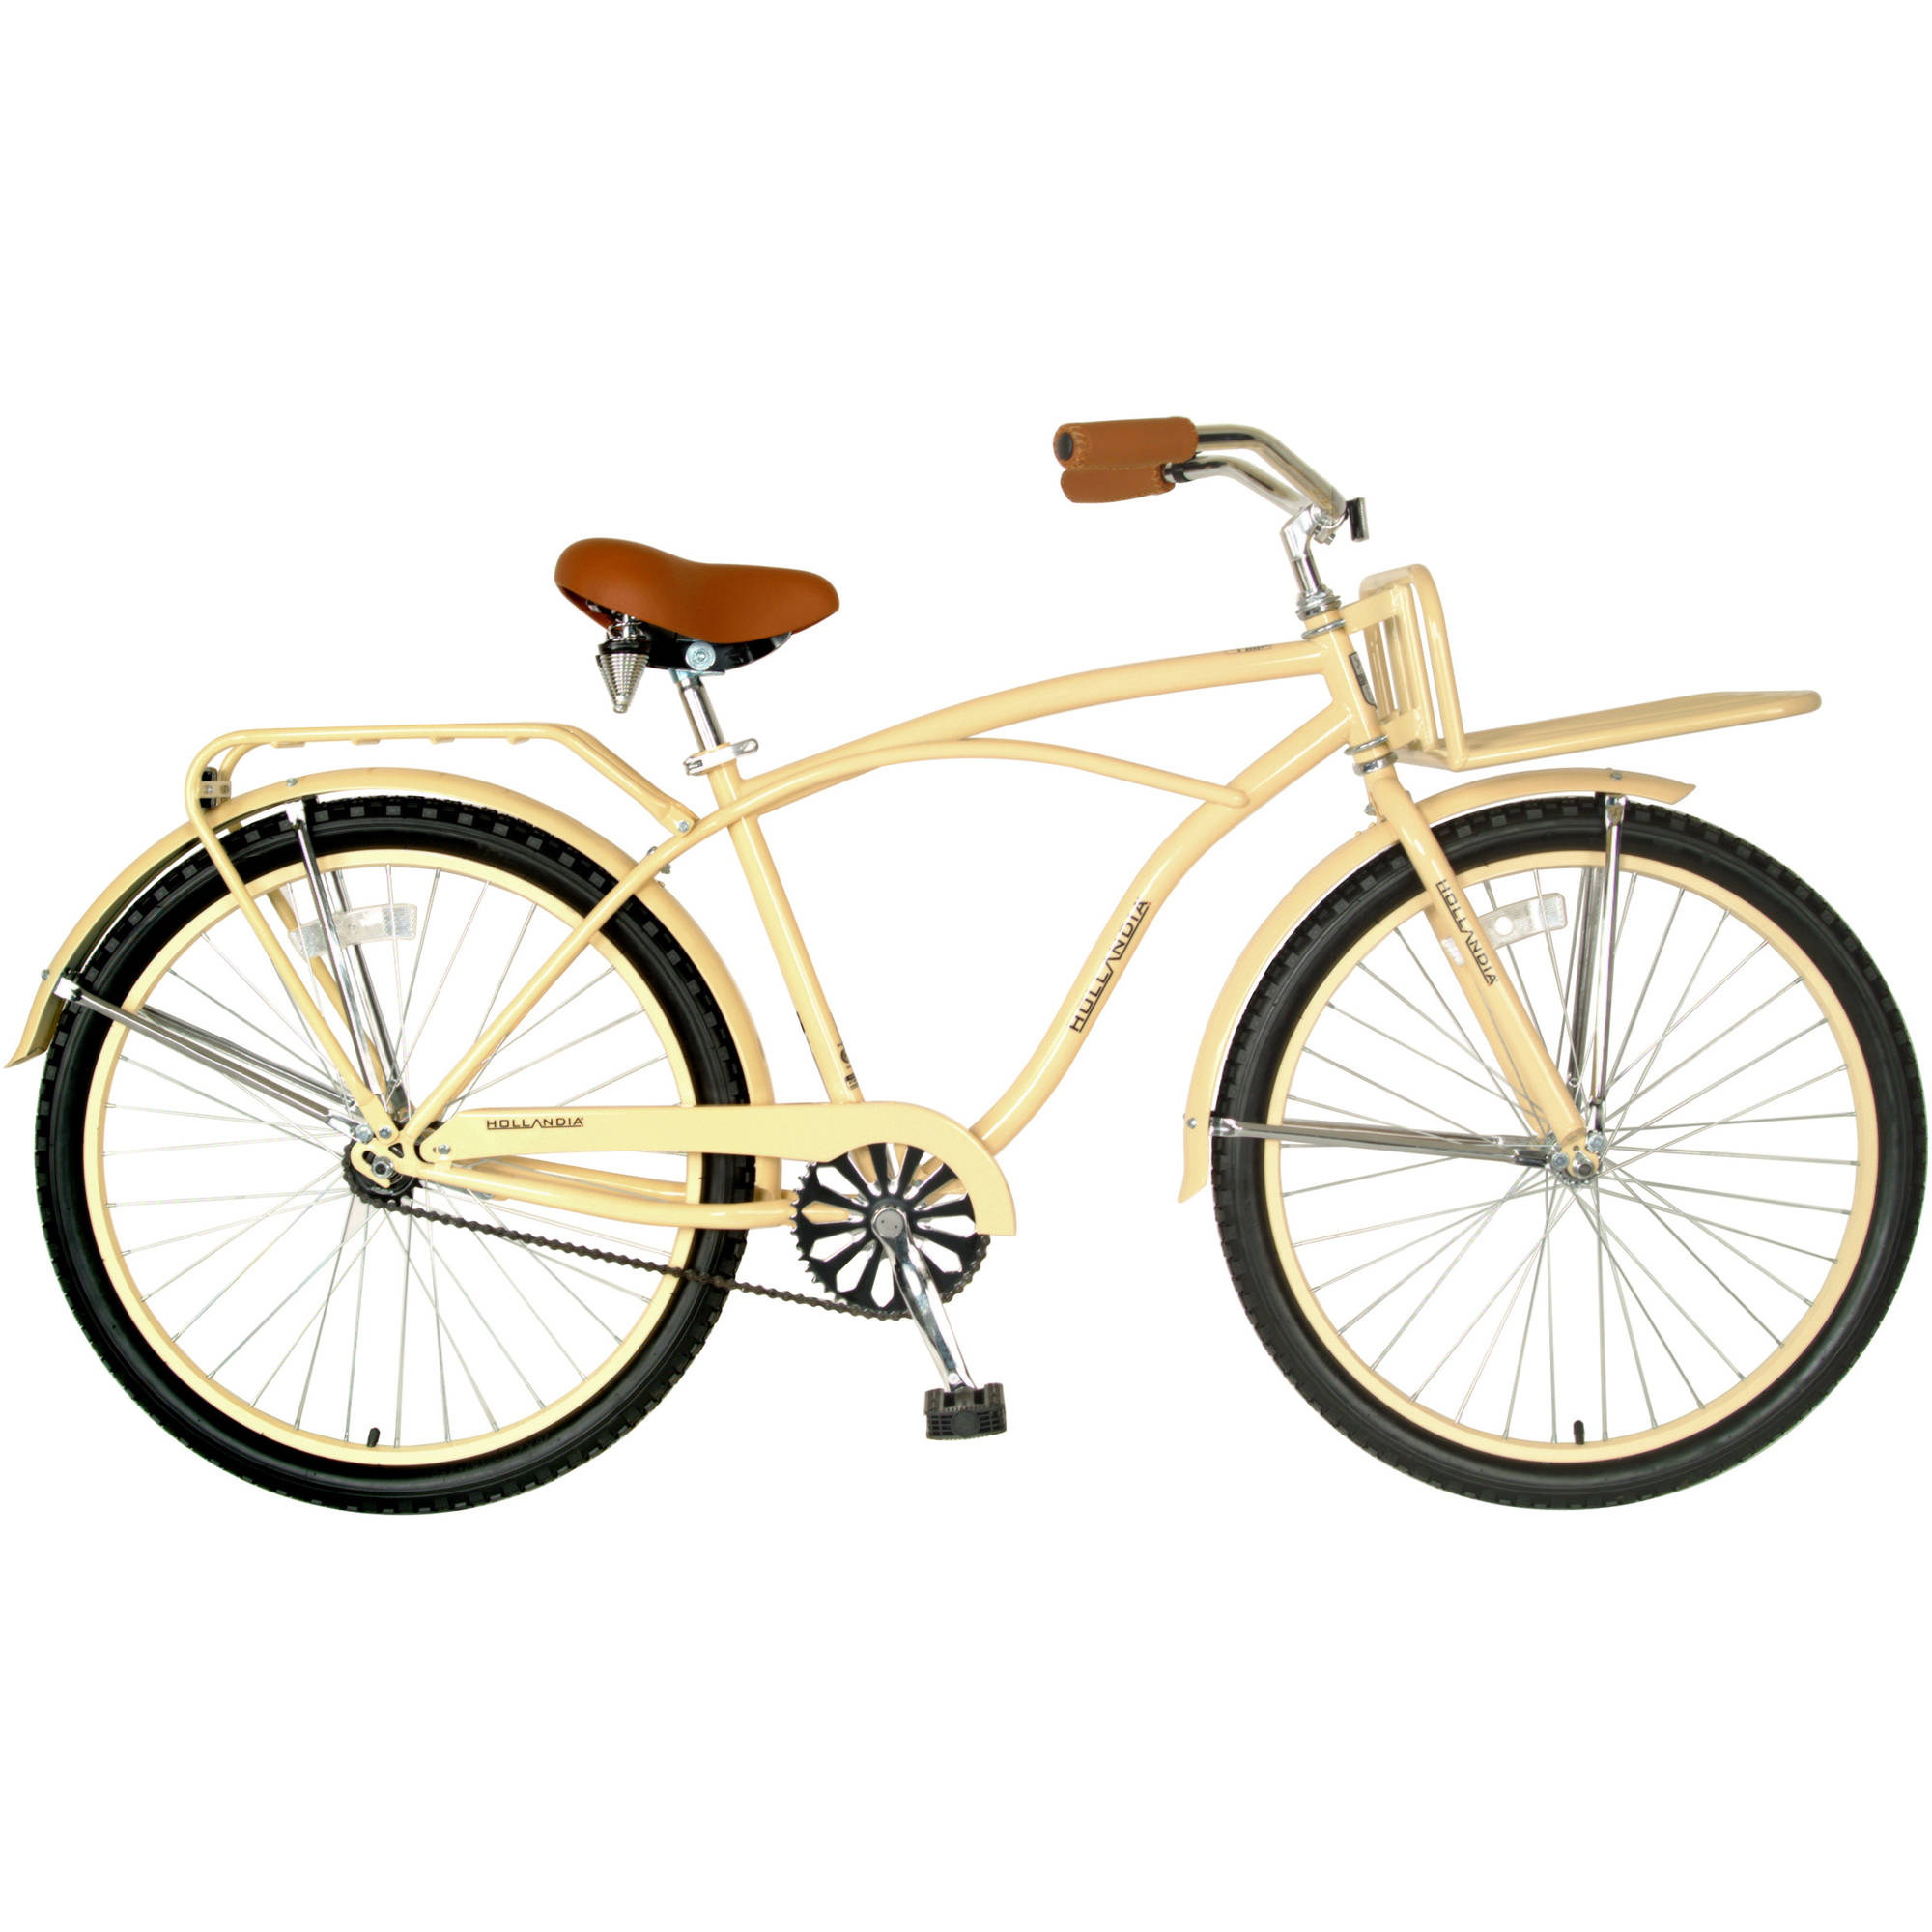 "26"" Hollandia Holiday Men's Cruiser Bike"